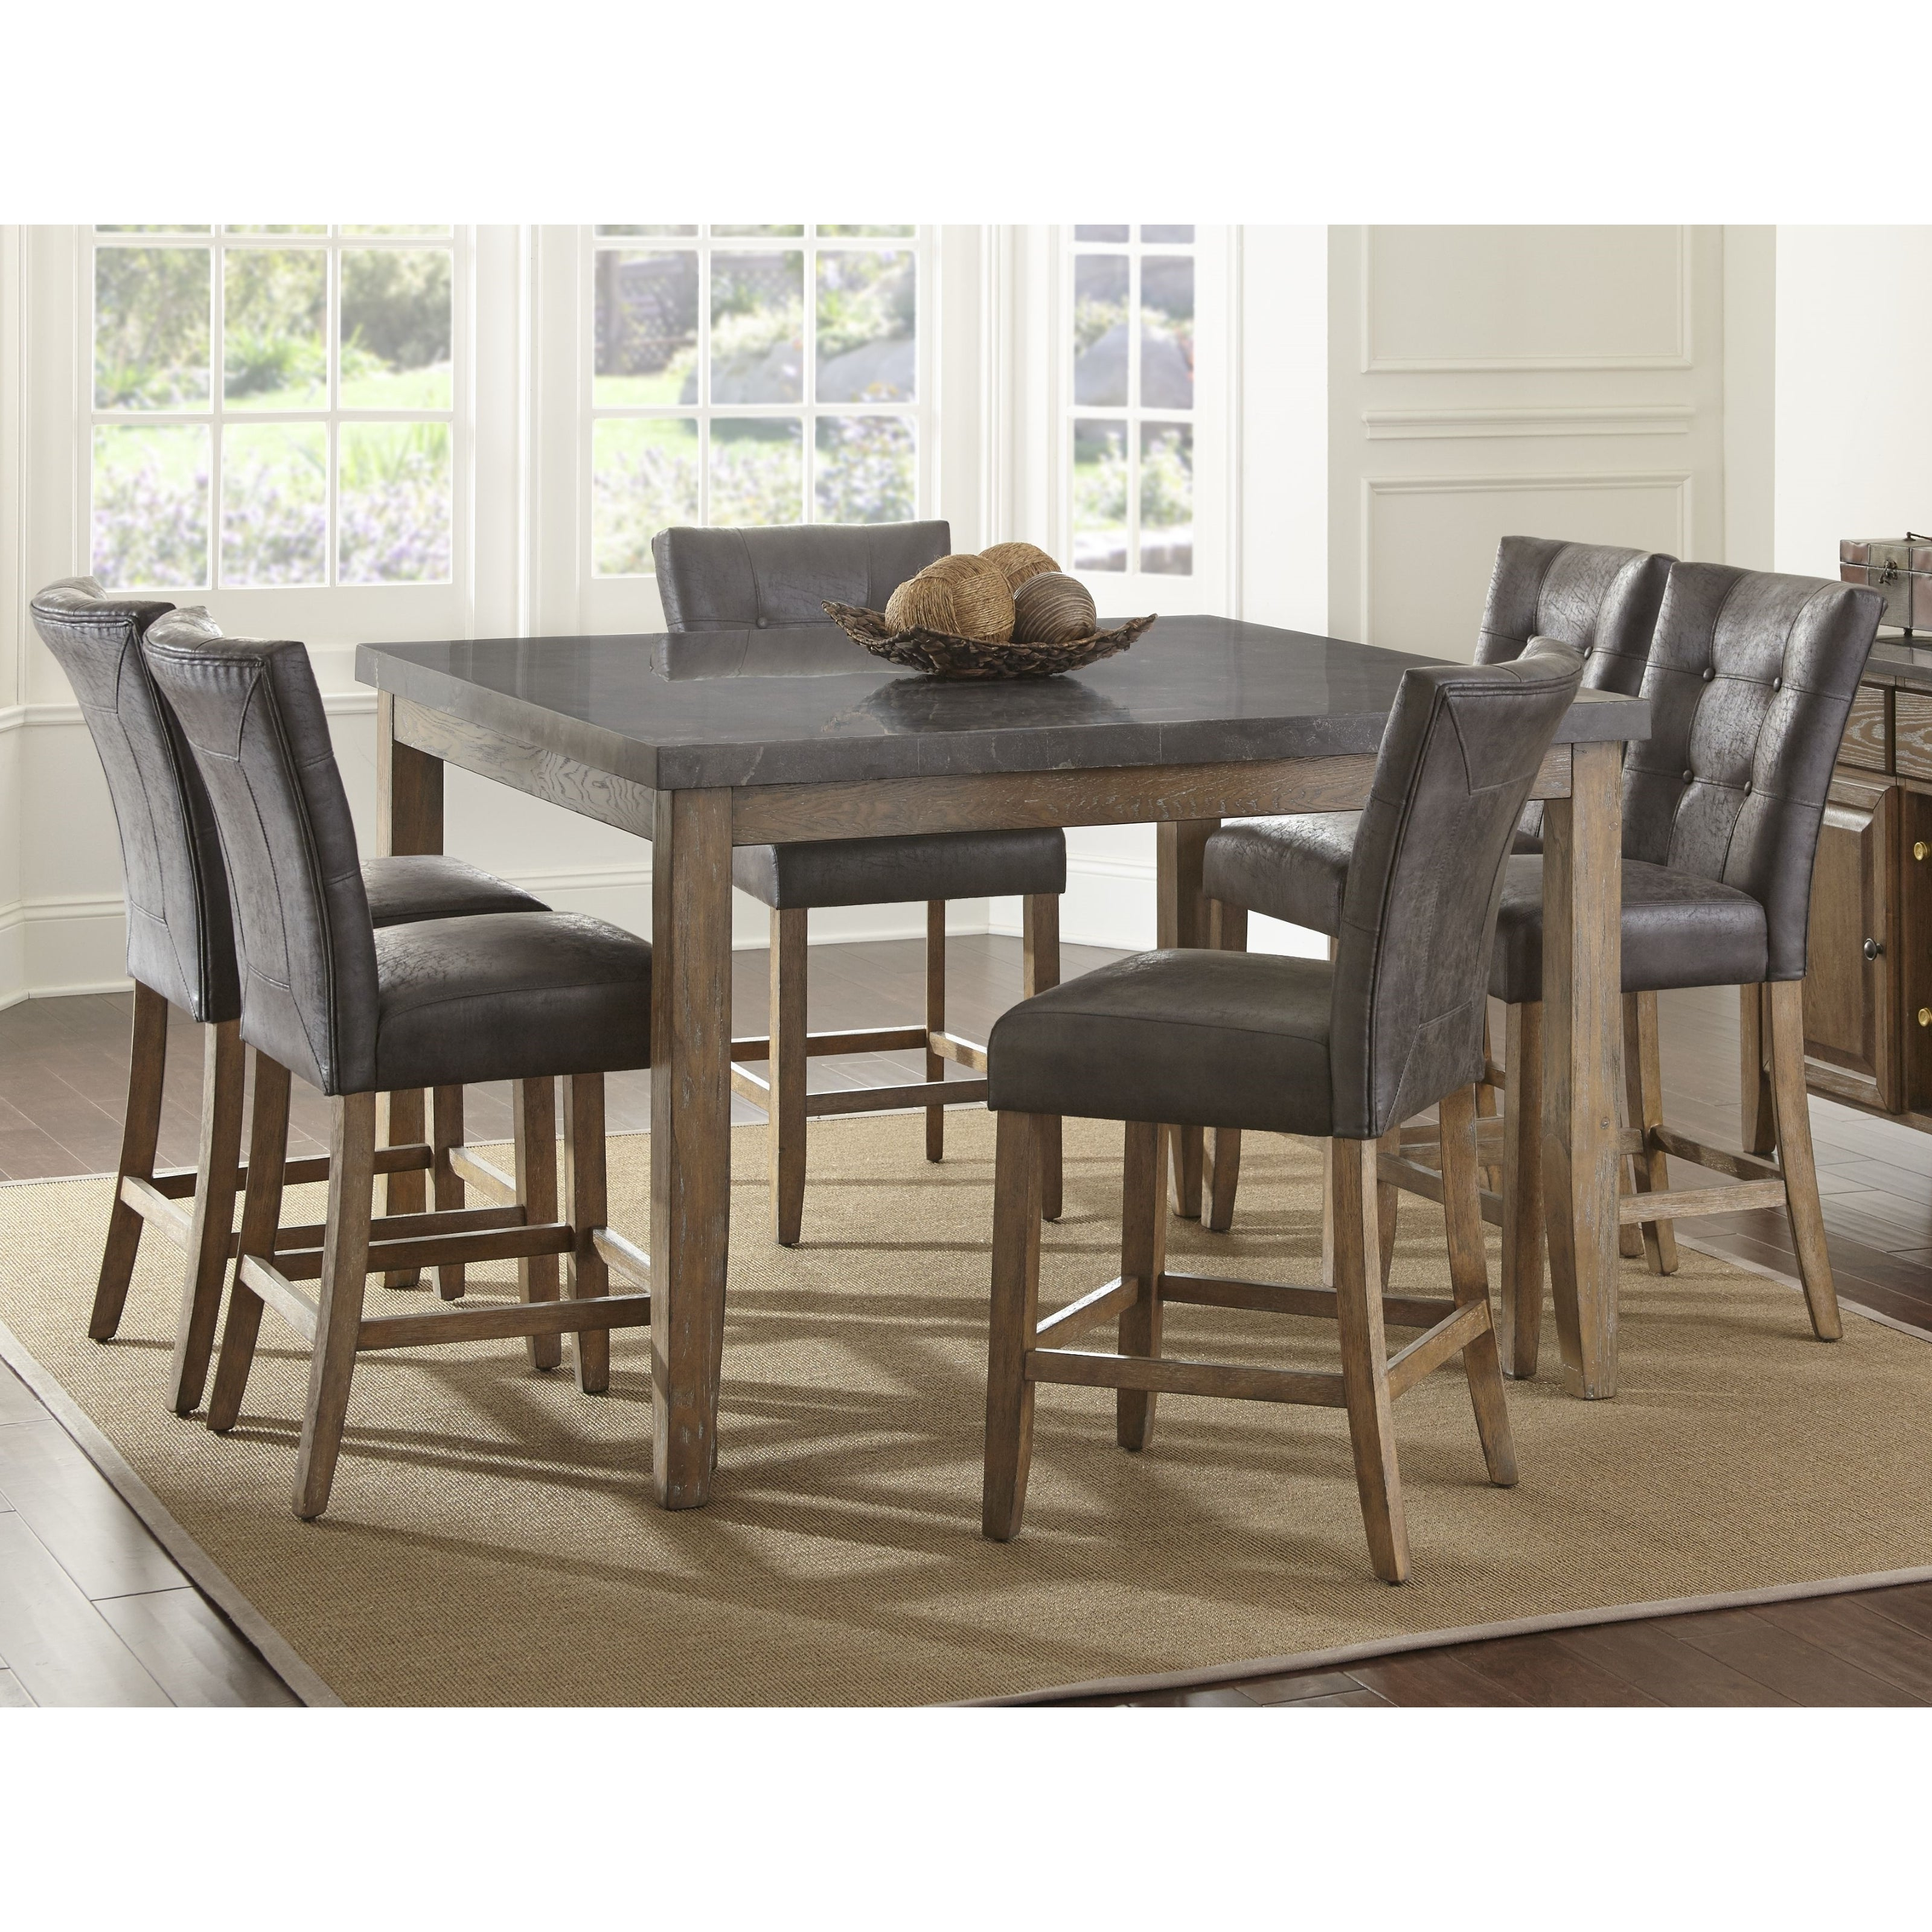 Most Popular Buy 5 Piece Sets Kitchen & Dining Room Sets Online At Overstock In West Hill Family Table 3 Piece Dining Sets (View 10 of 25)